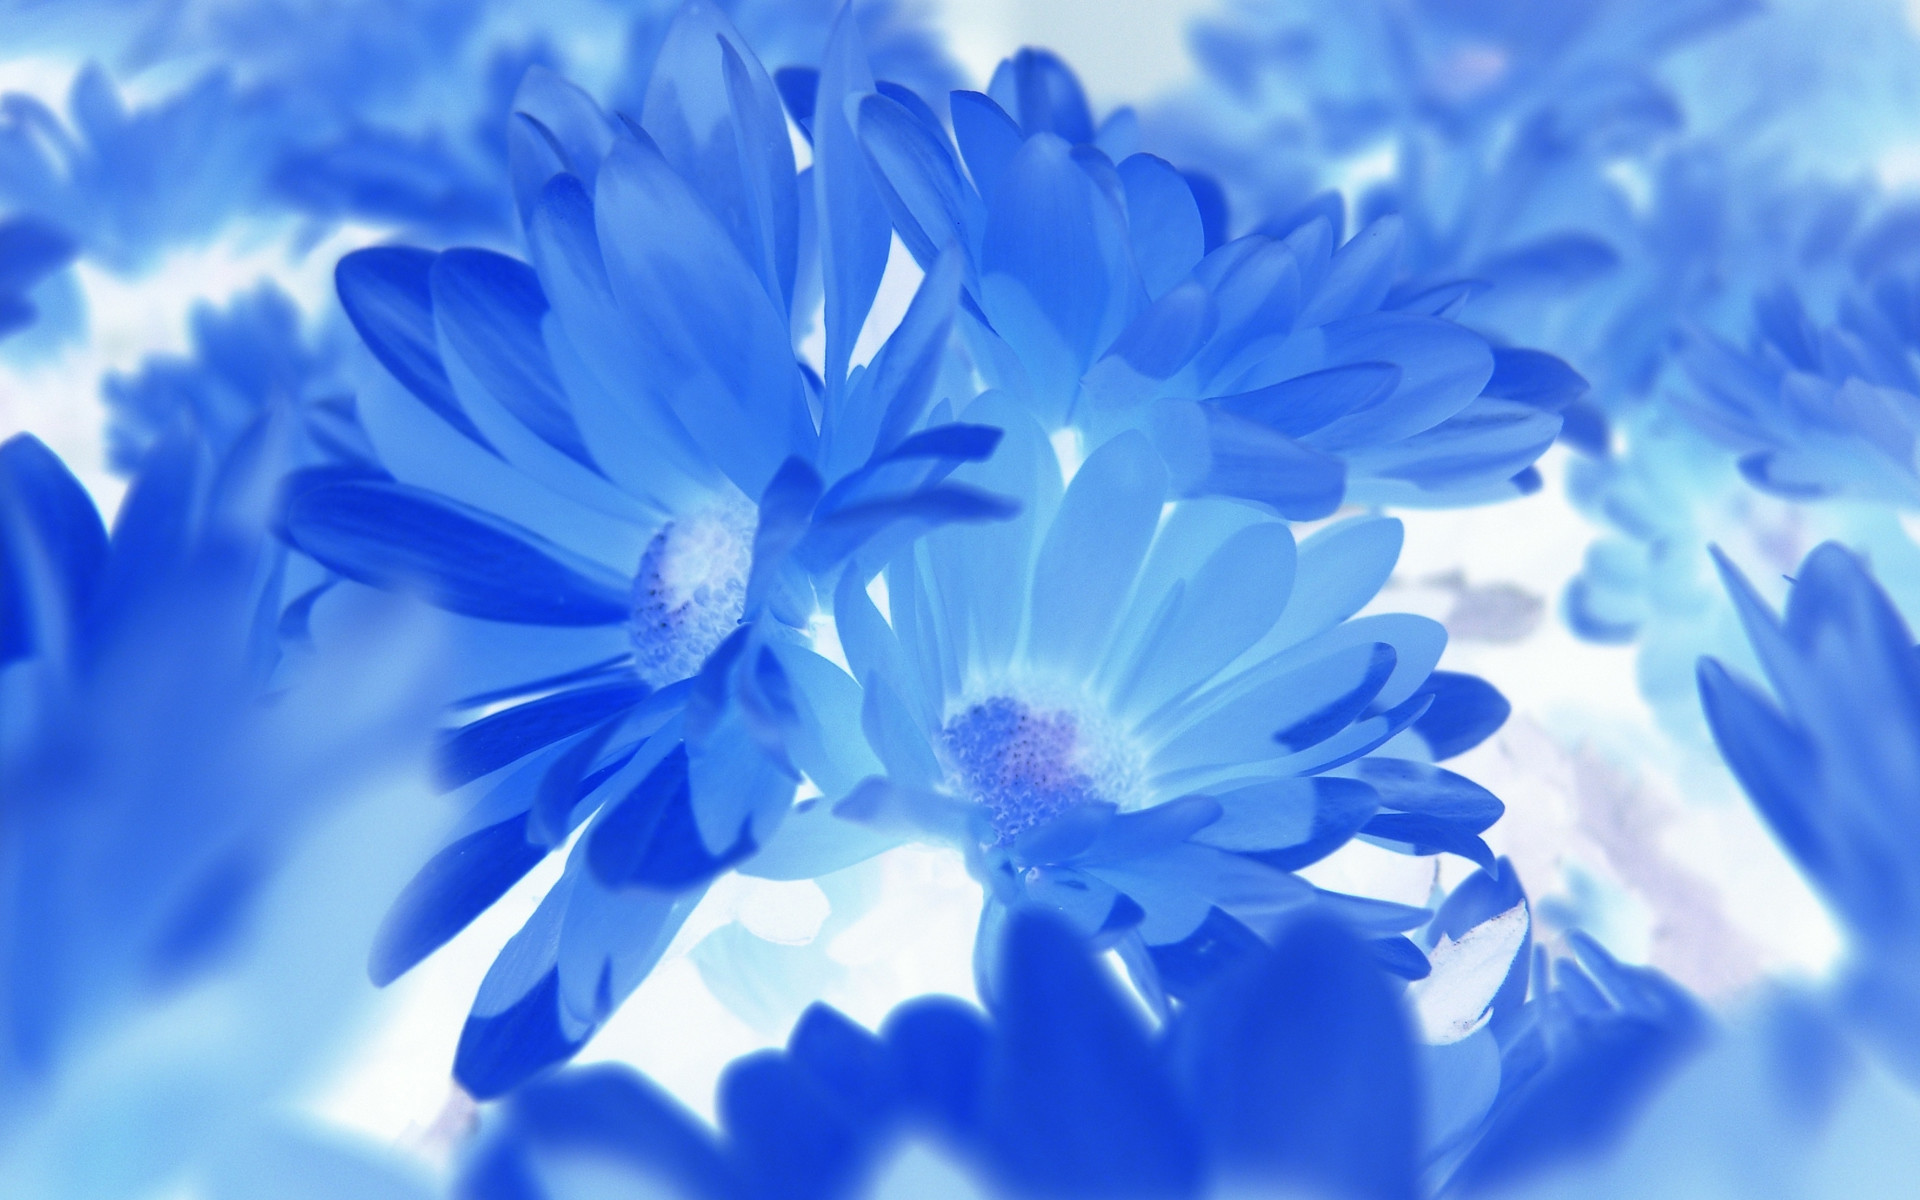 Res: 1920x1200, Hd Blue Flowers Wallpaper 7 Wide Wallpaper